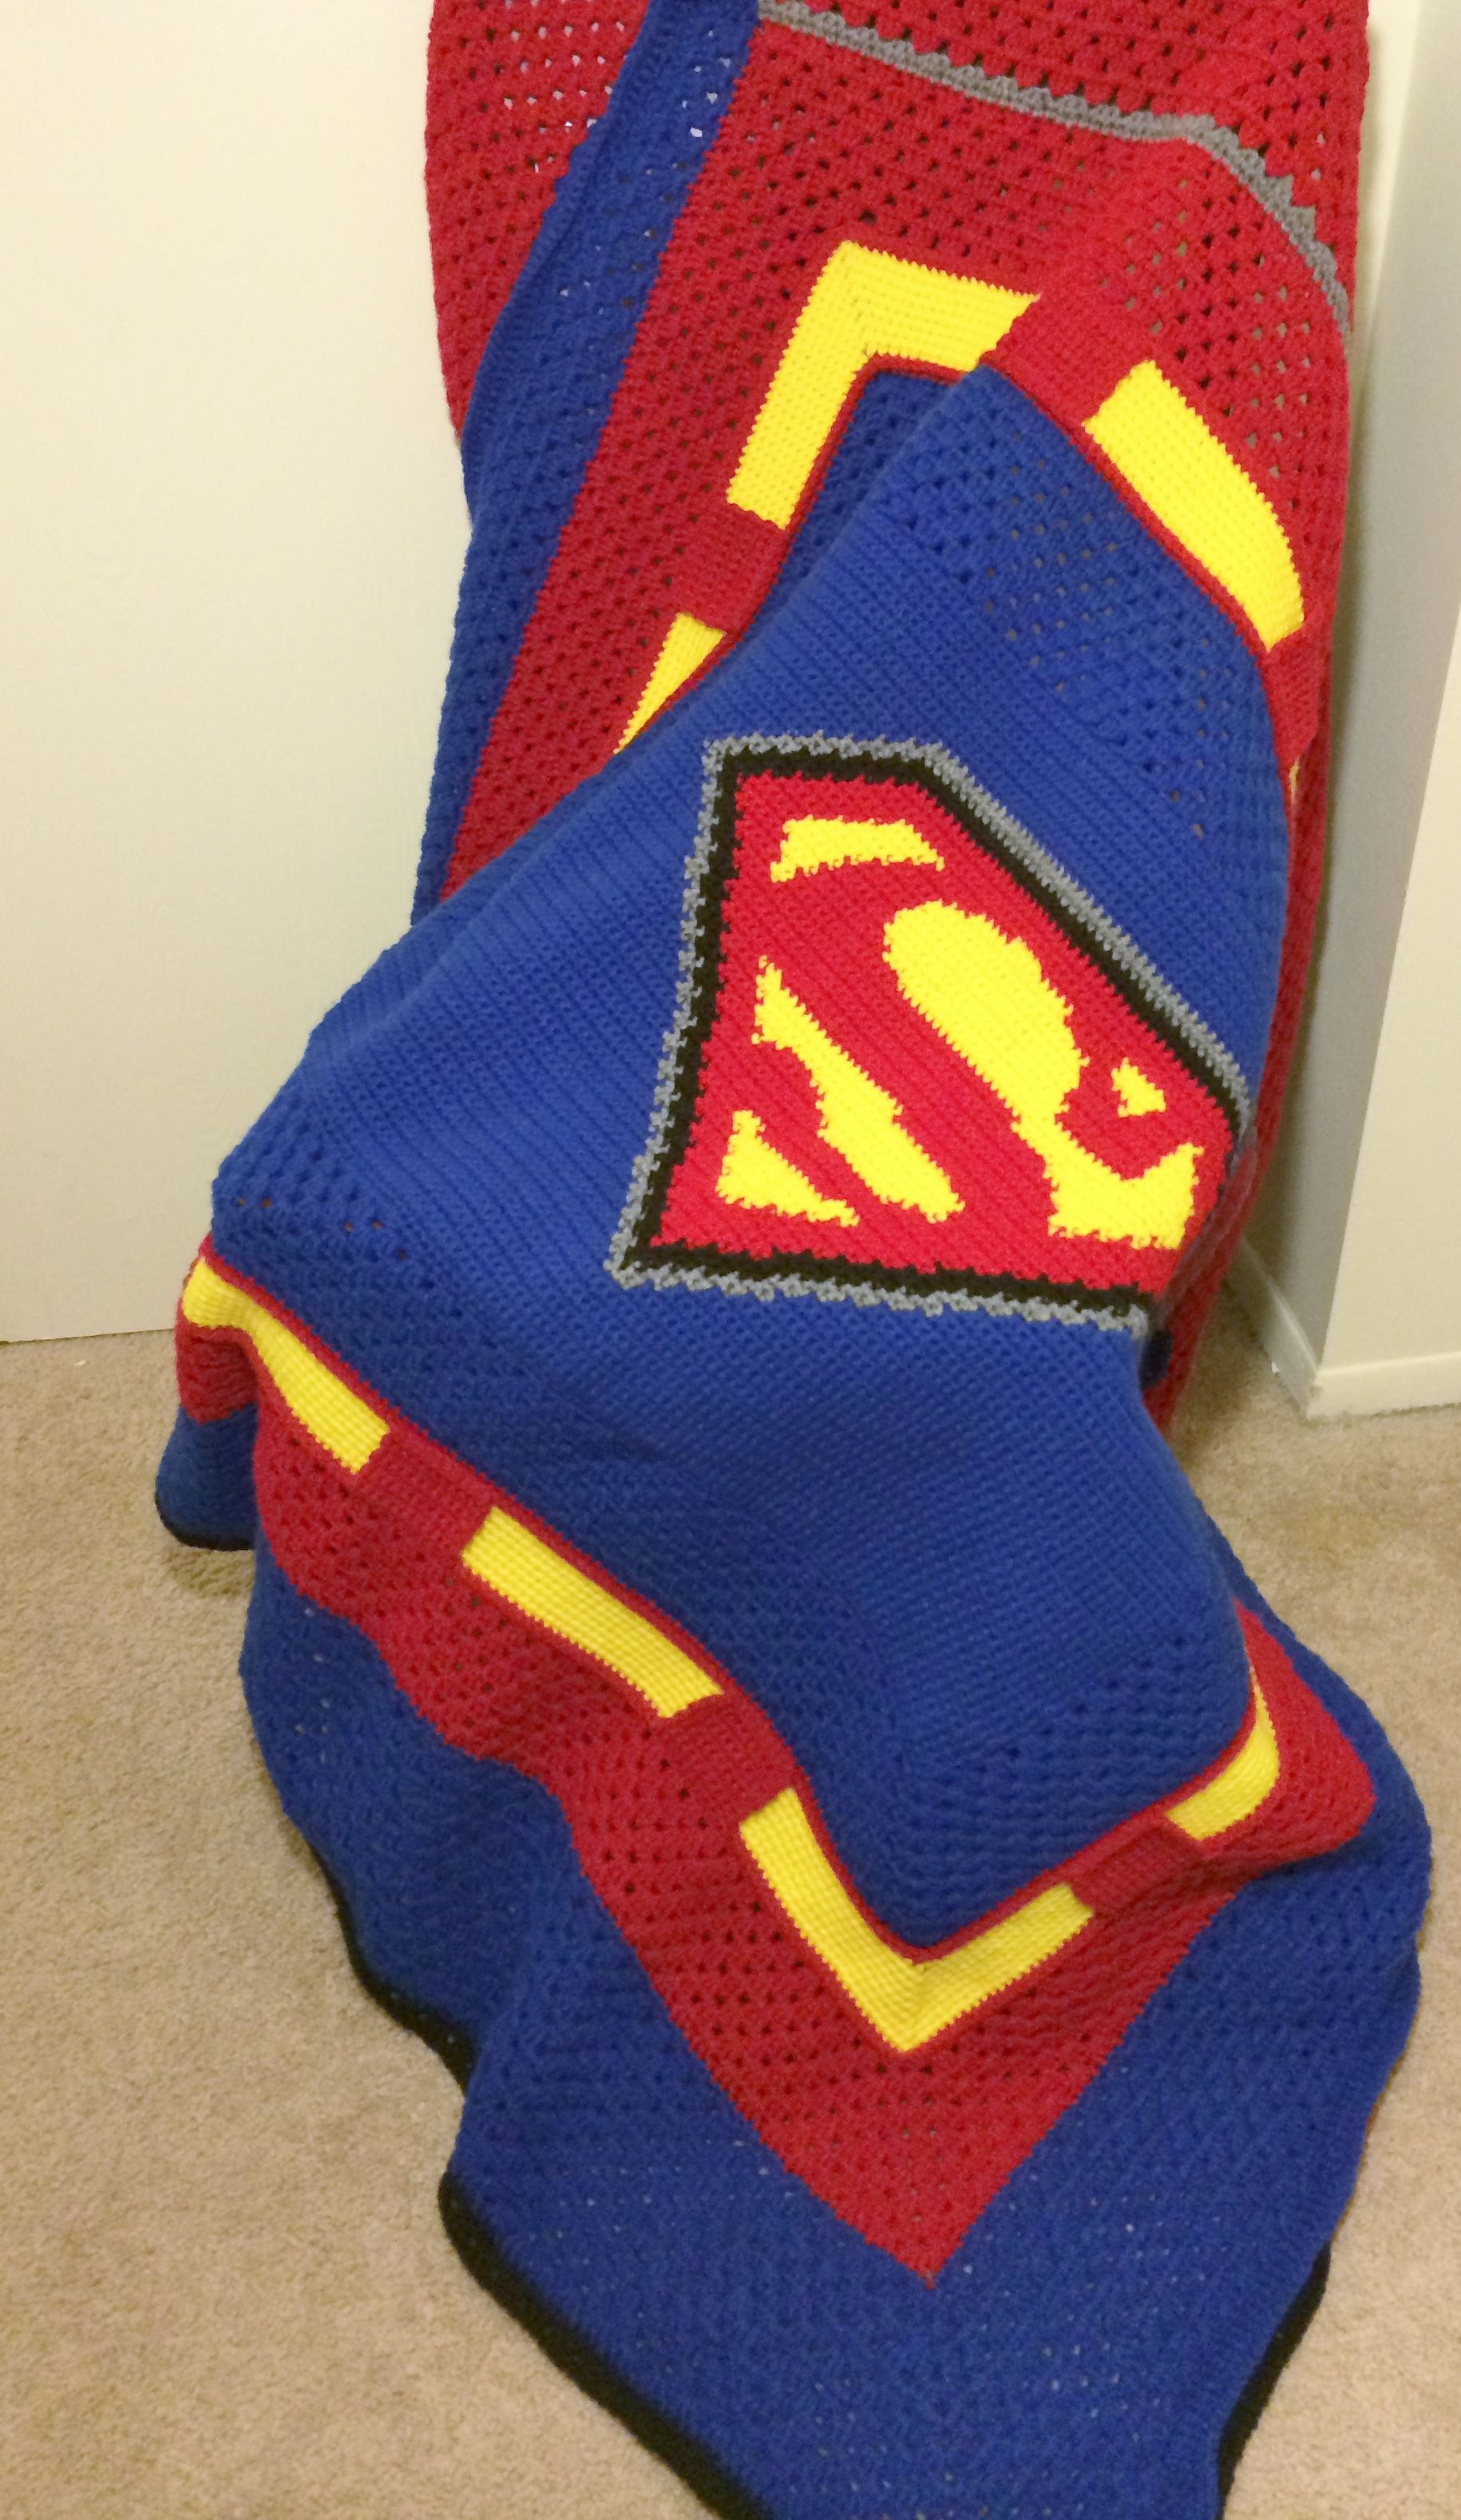 Superman Crochet on Pinterest Crochet Batman, Pixel ...